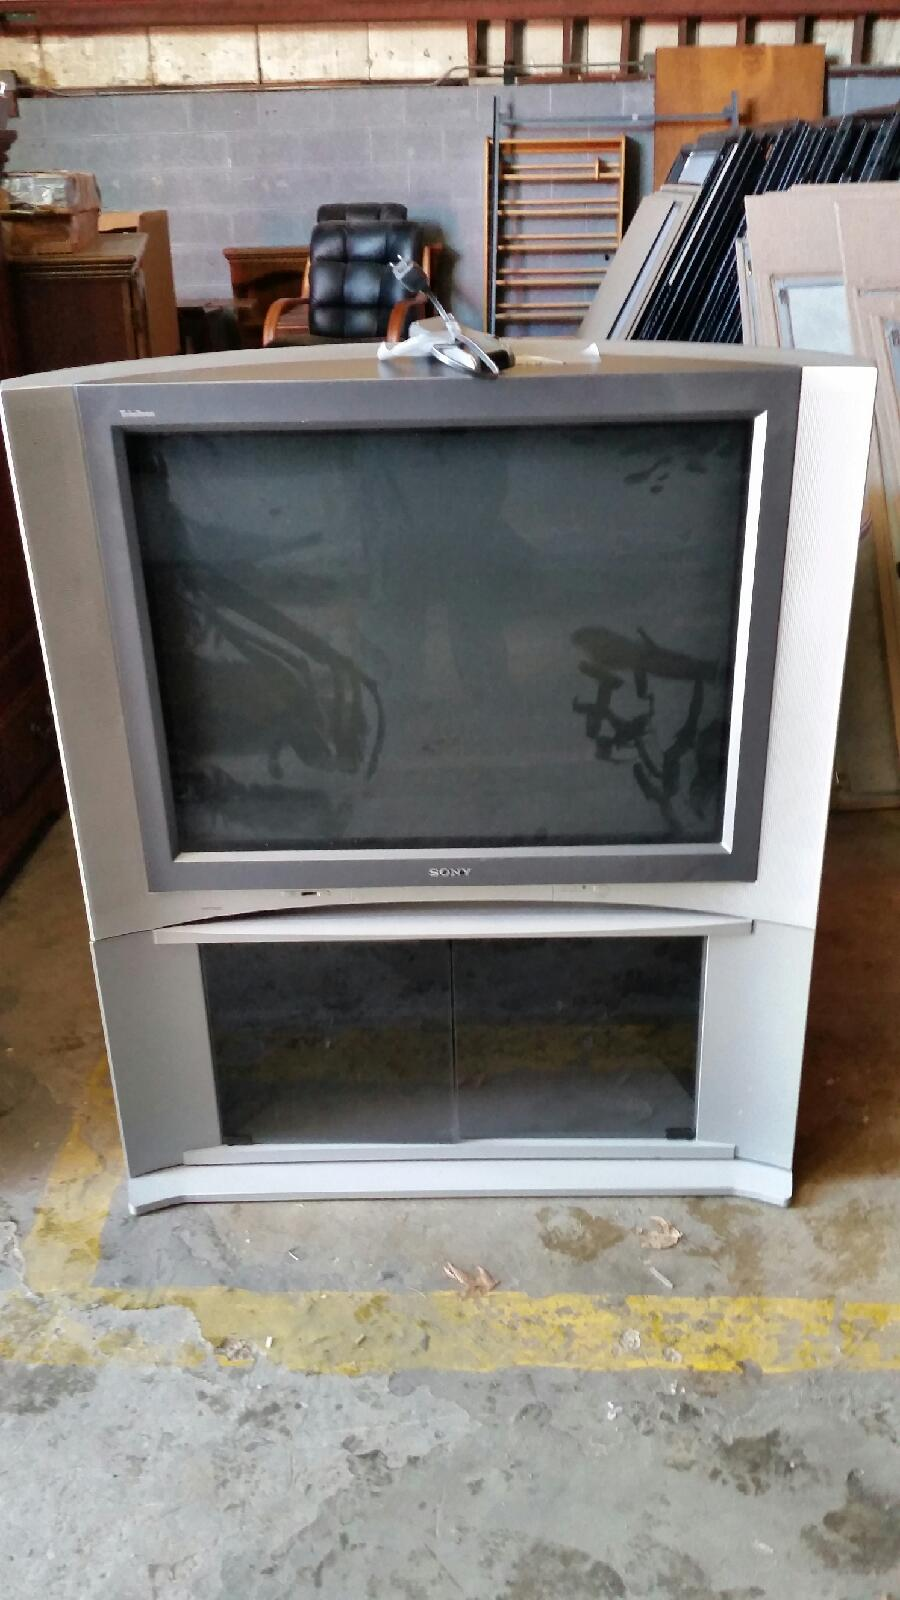 Remove and Dispose of Large Projection TV